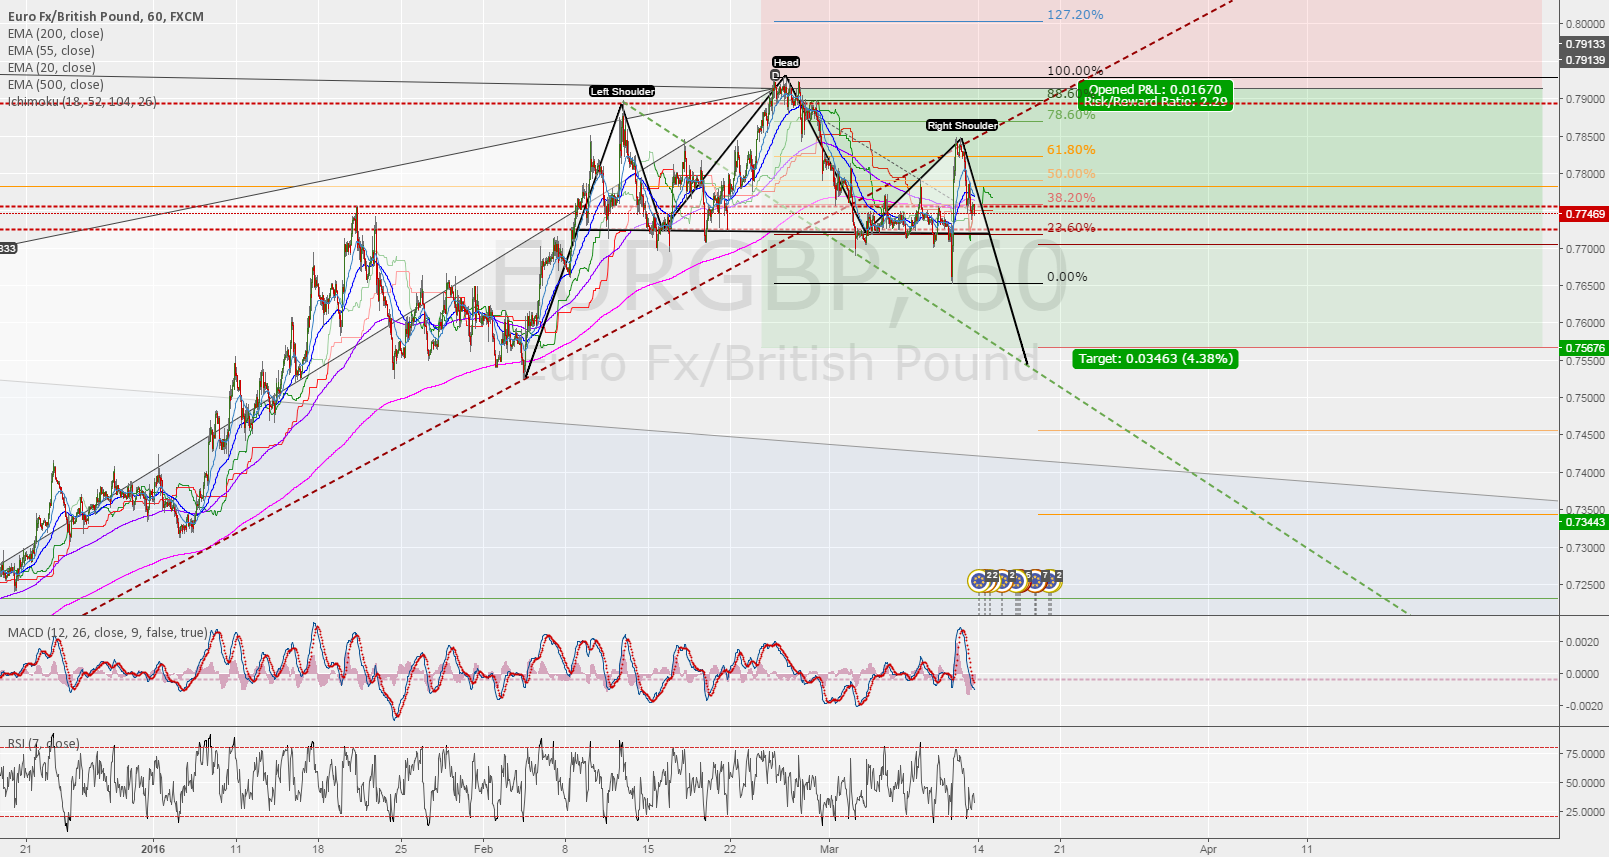 EURGBP UPDATED STATUS - NEW SELL?